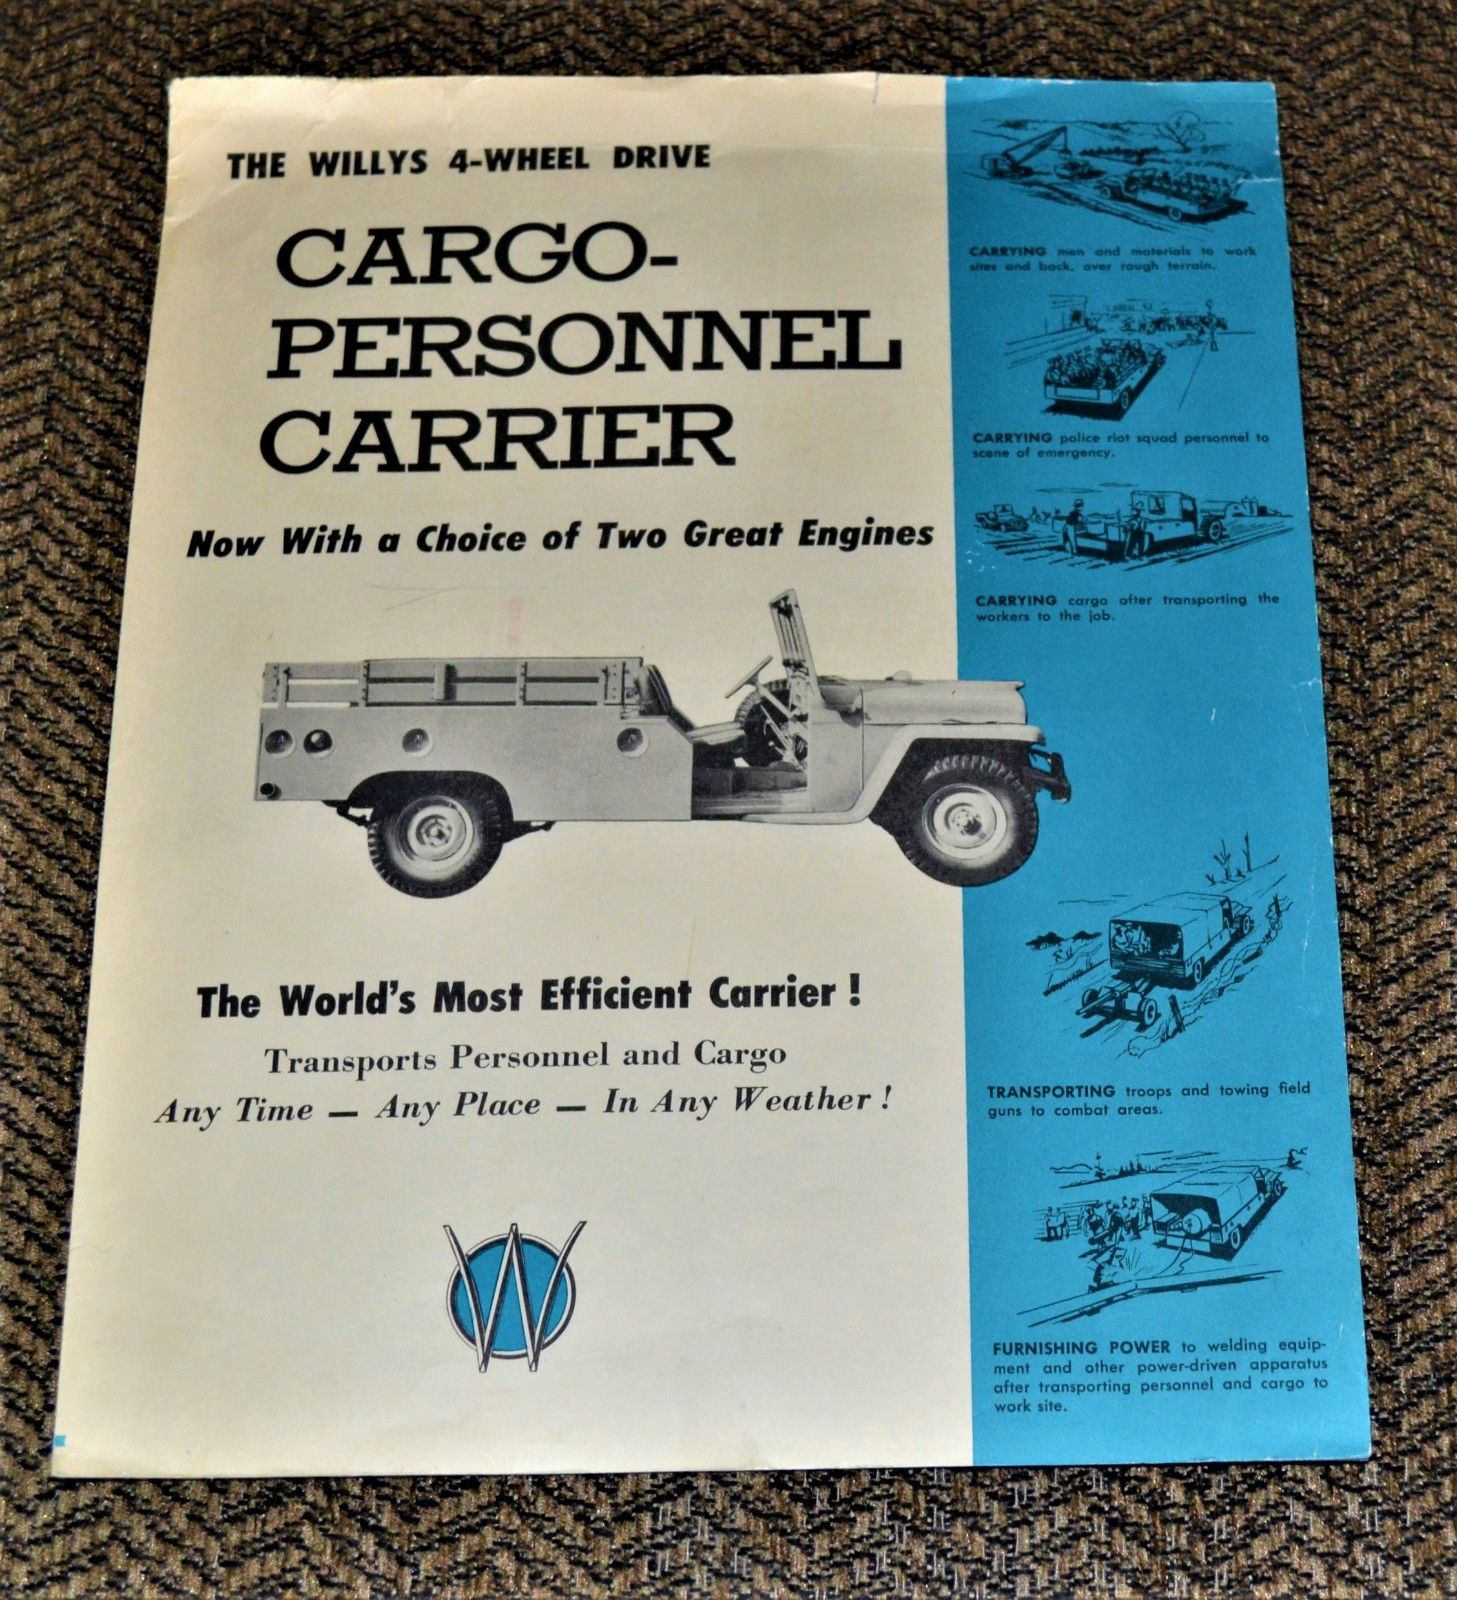 year-willys-cargo-personnel-carrier-brochure1